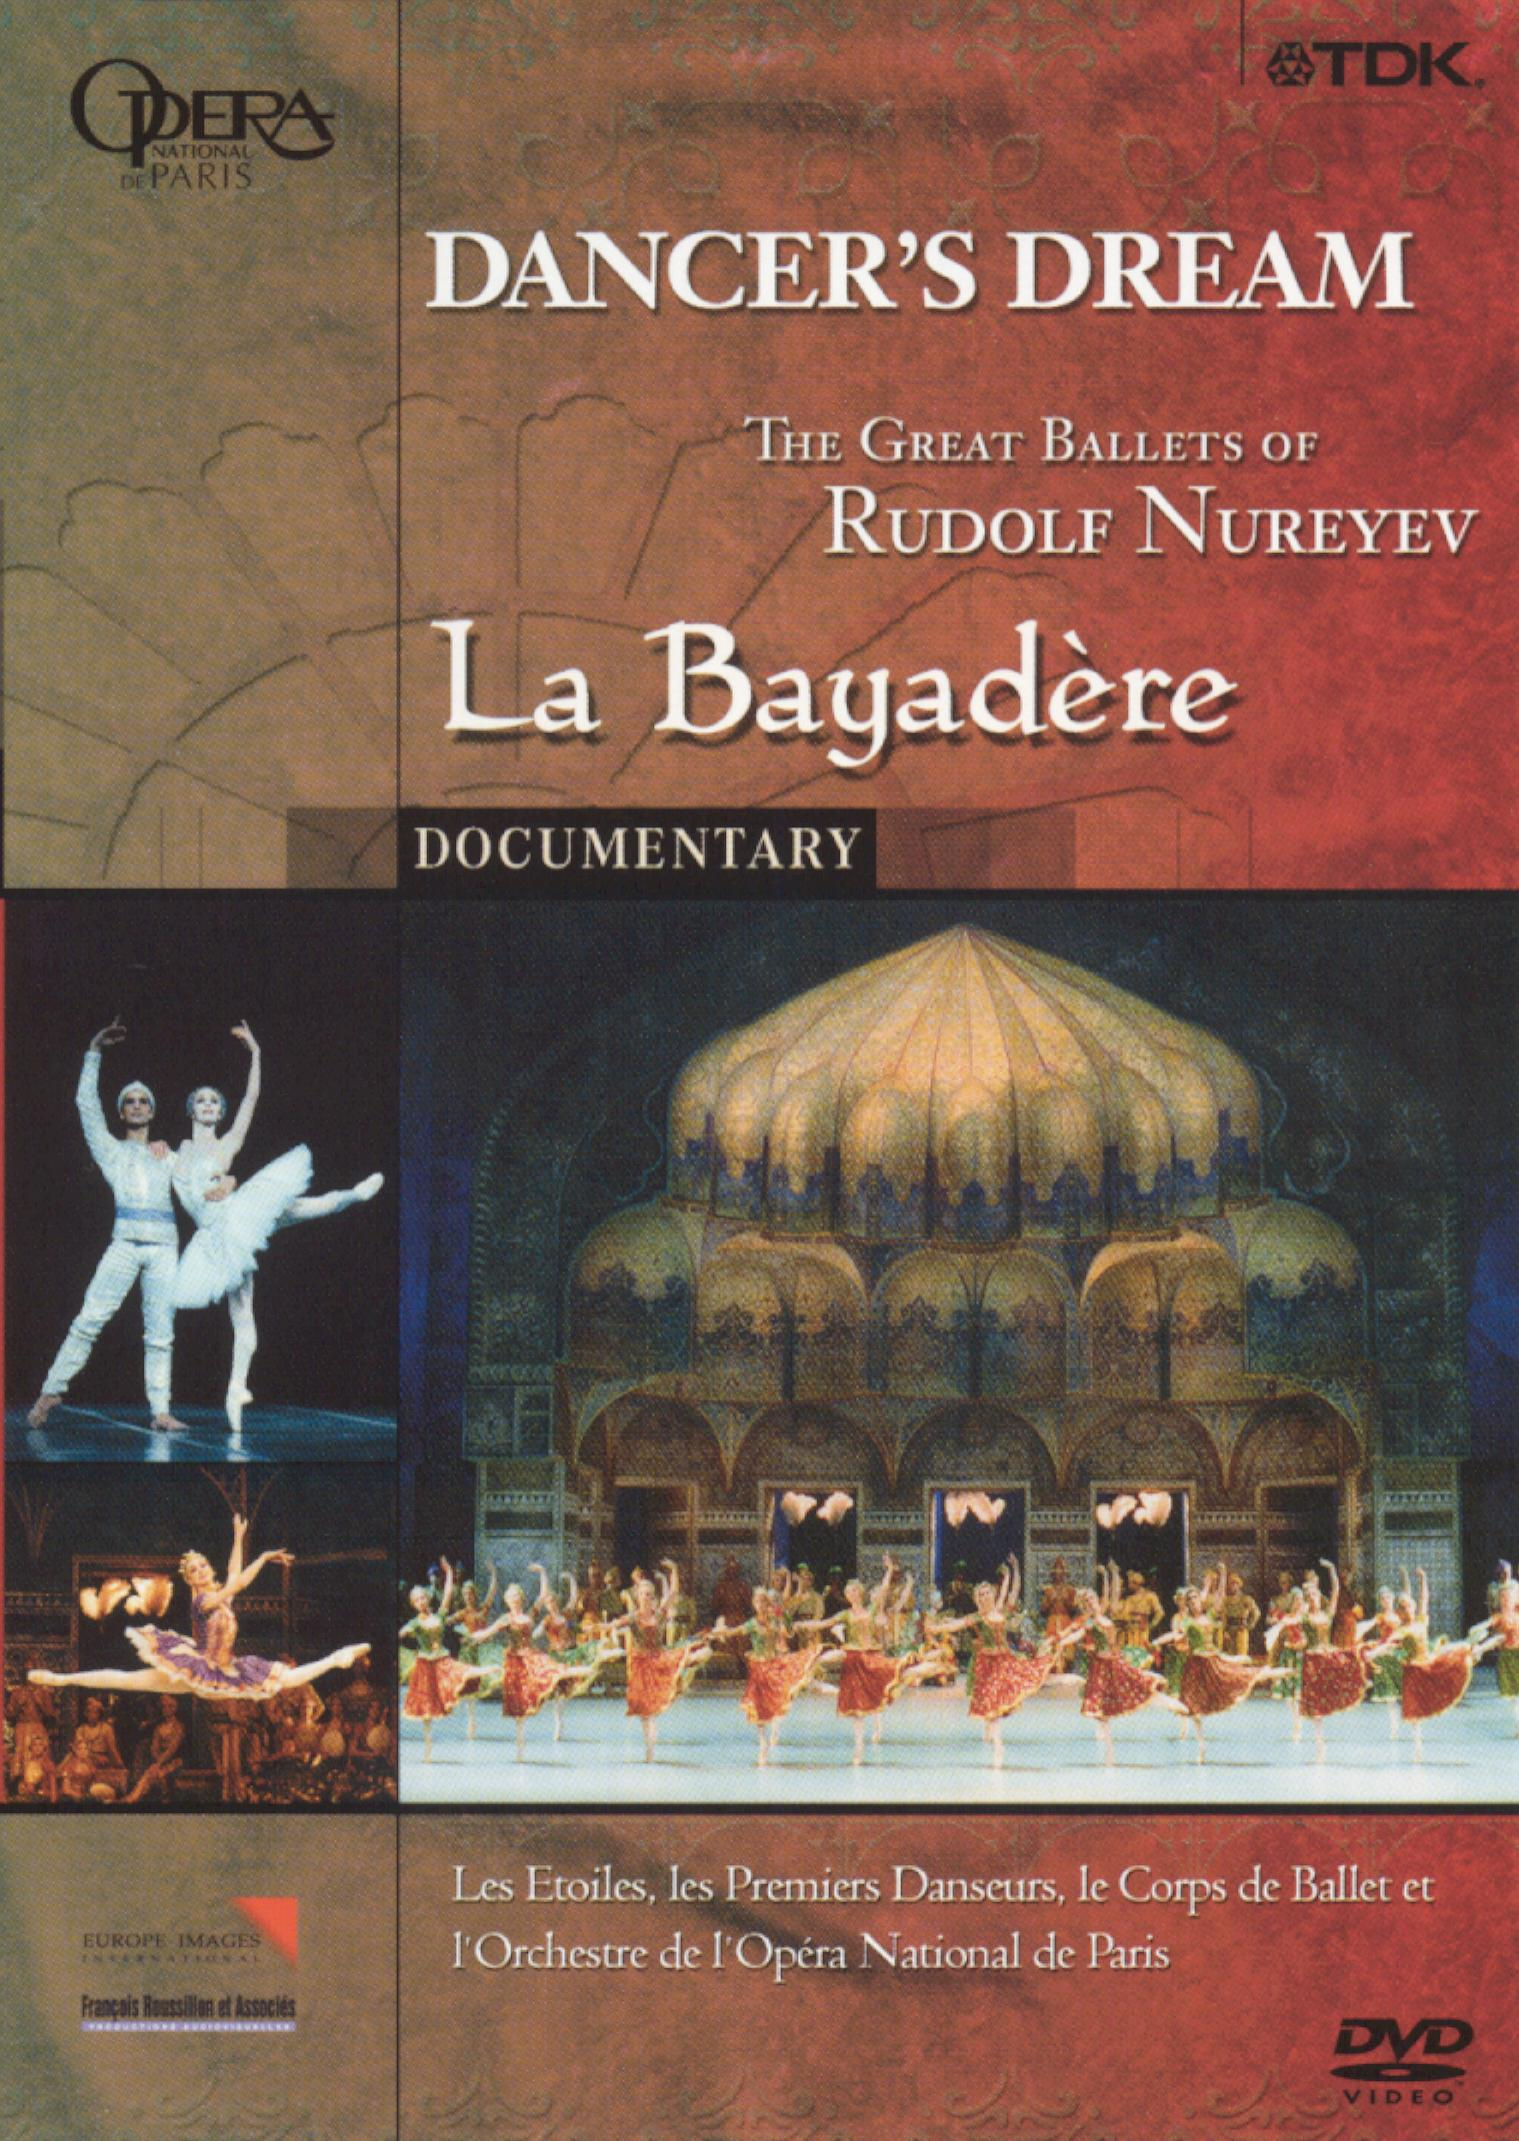 Dancer's Dream: The Great Ballets of Rudolf Nureyev - La Bayadère